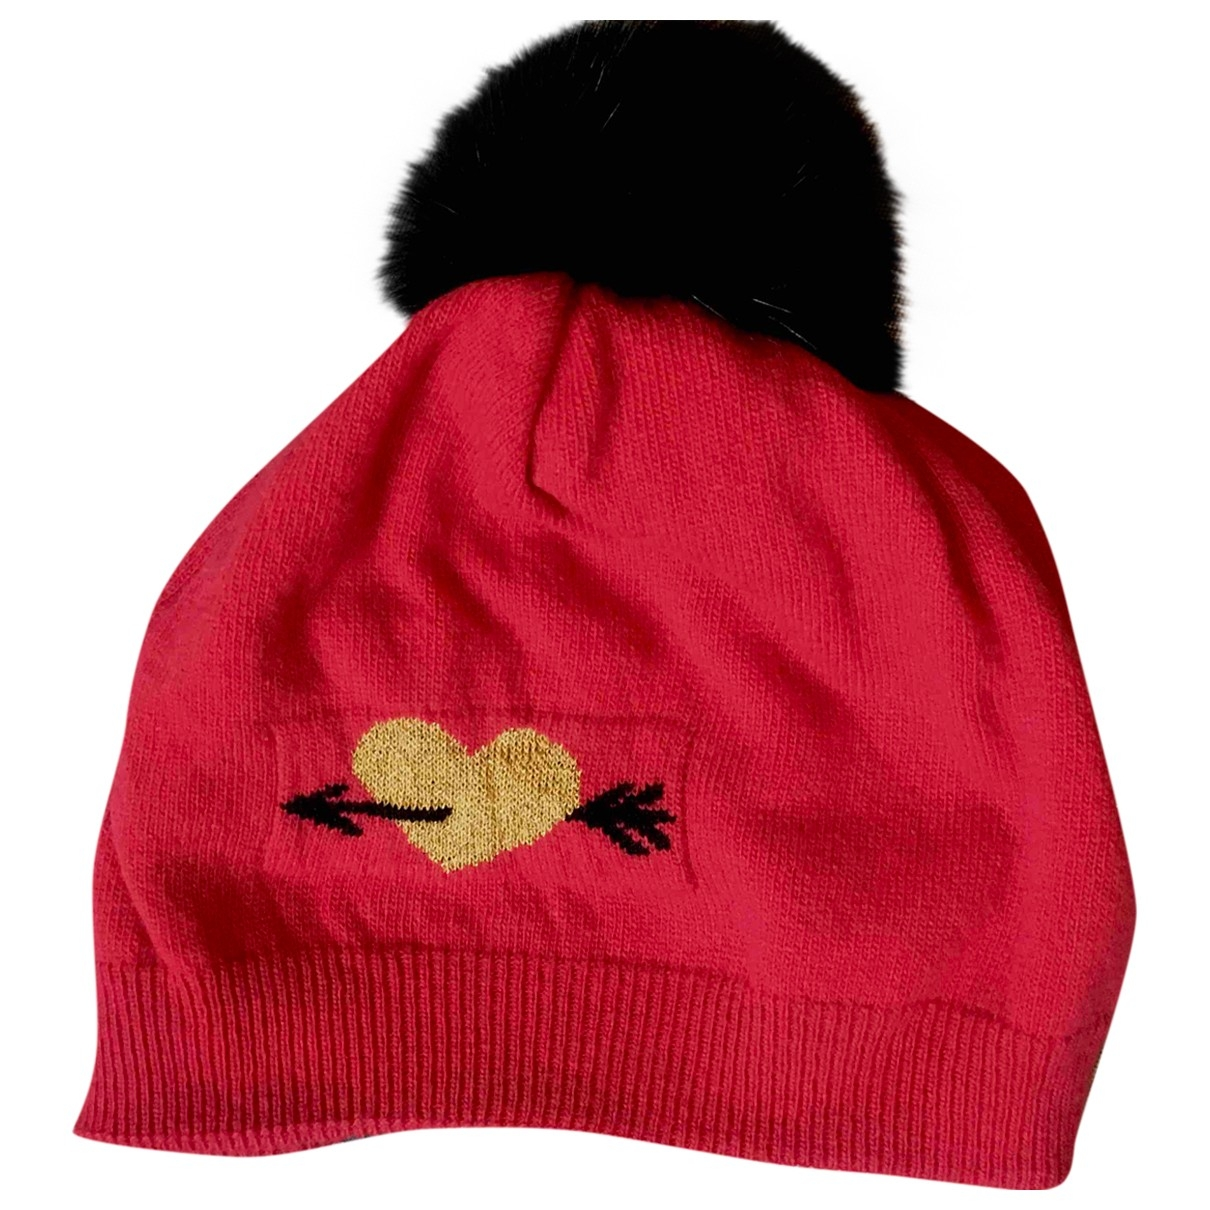 Moschino \N Red Wool hat for Women M International